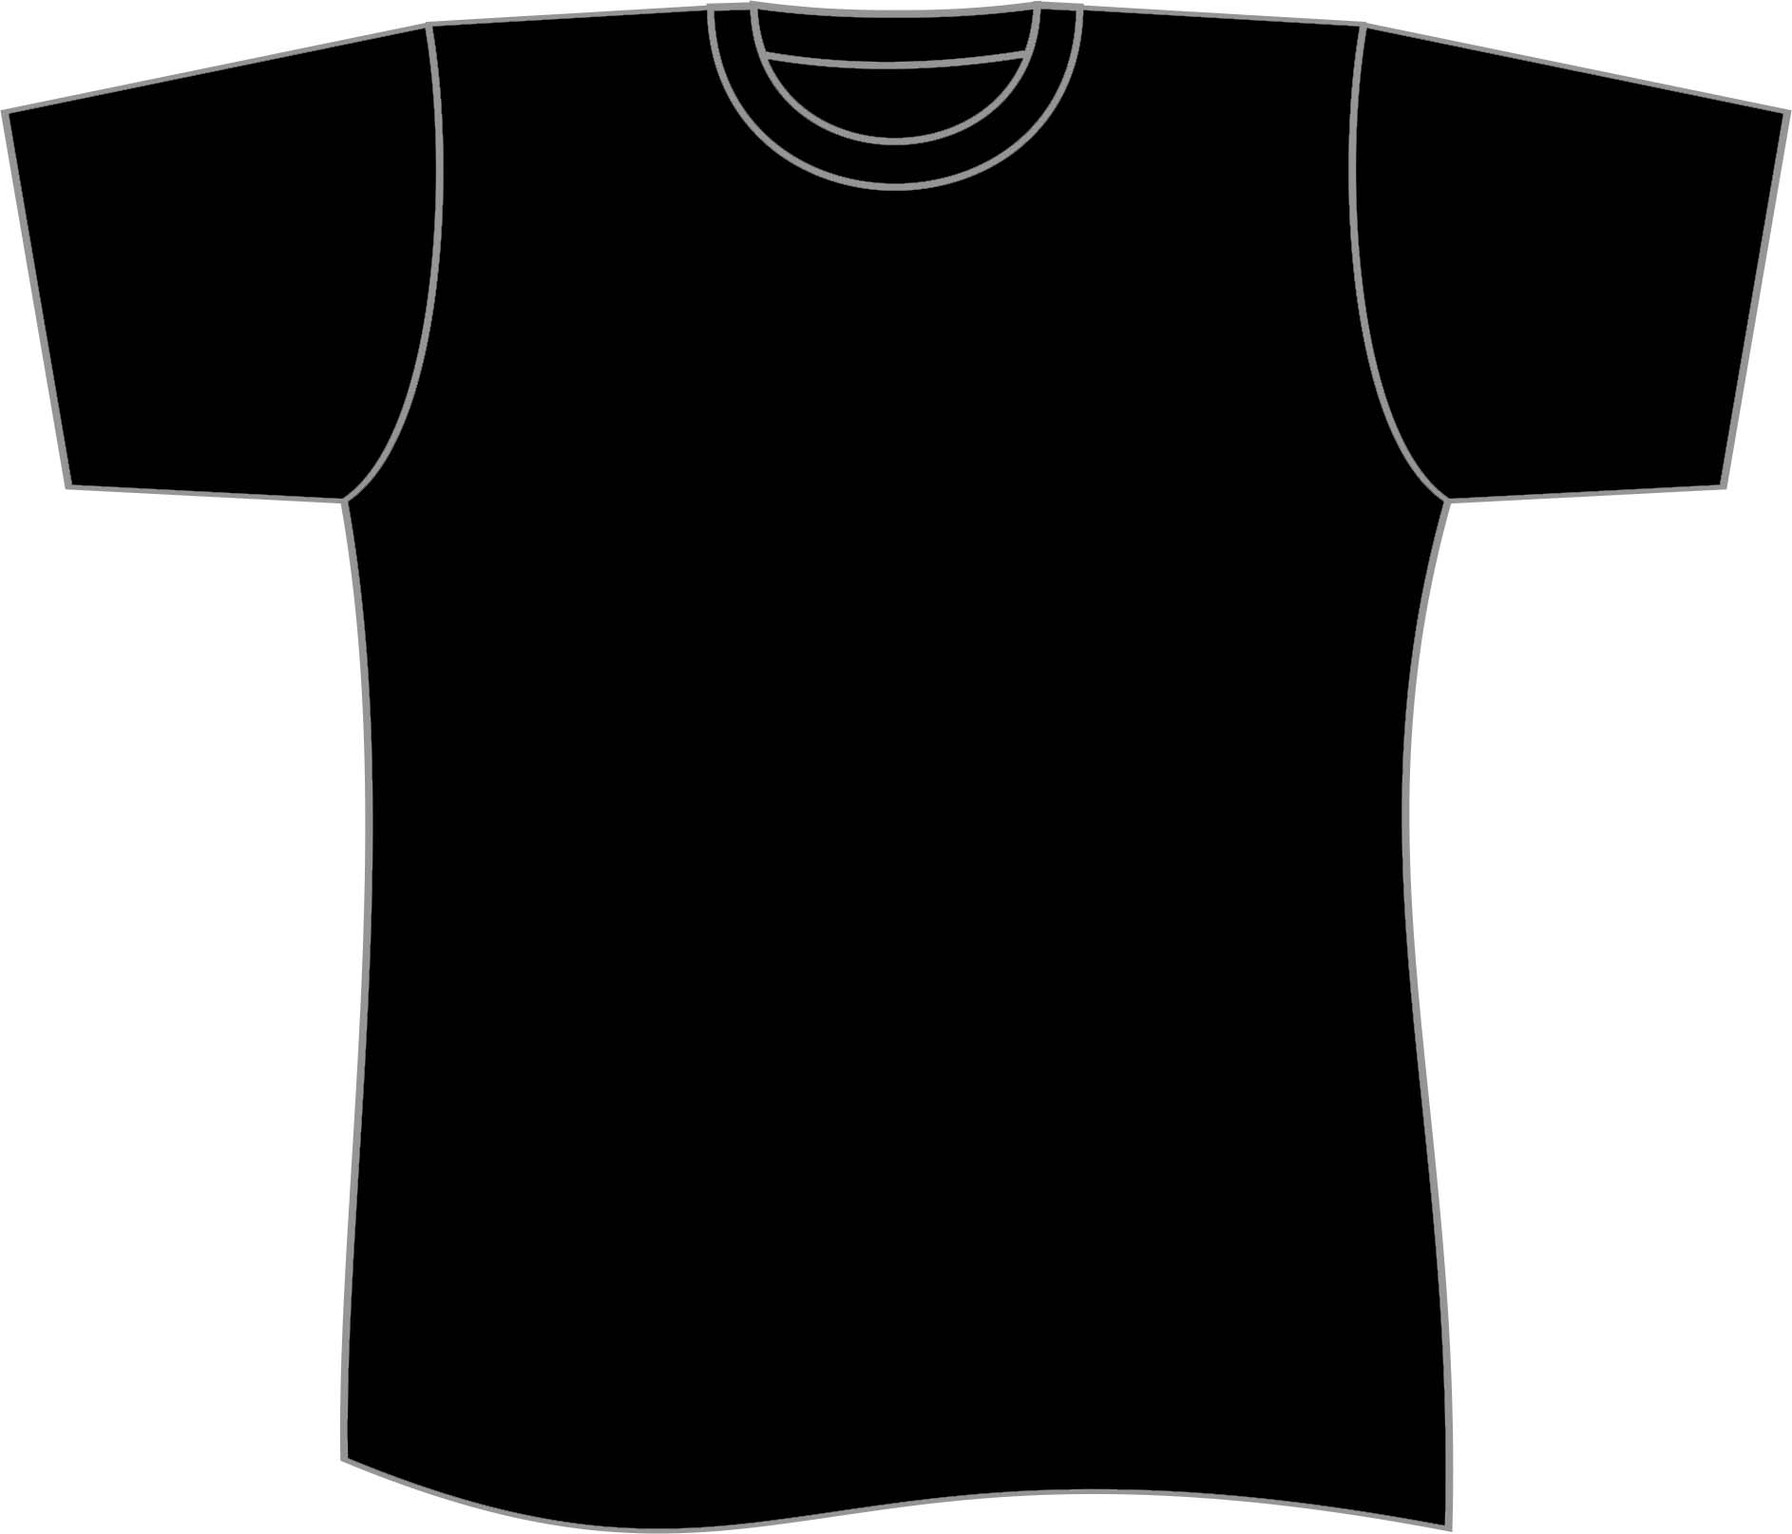 Black t shirt vector free -  Vector Template T Shirt Plain Black Shirt Template Clipart Free To Use Download